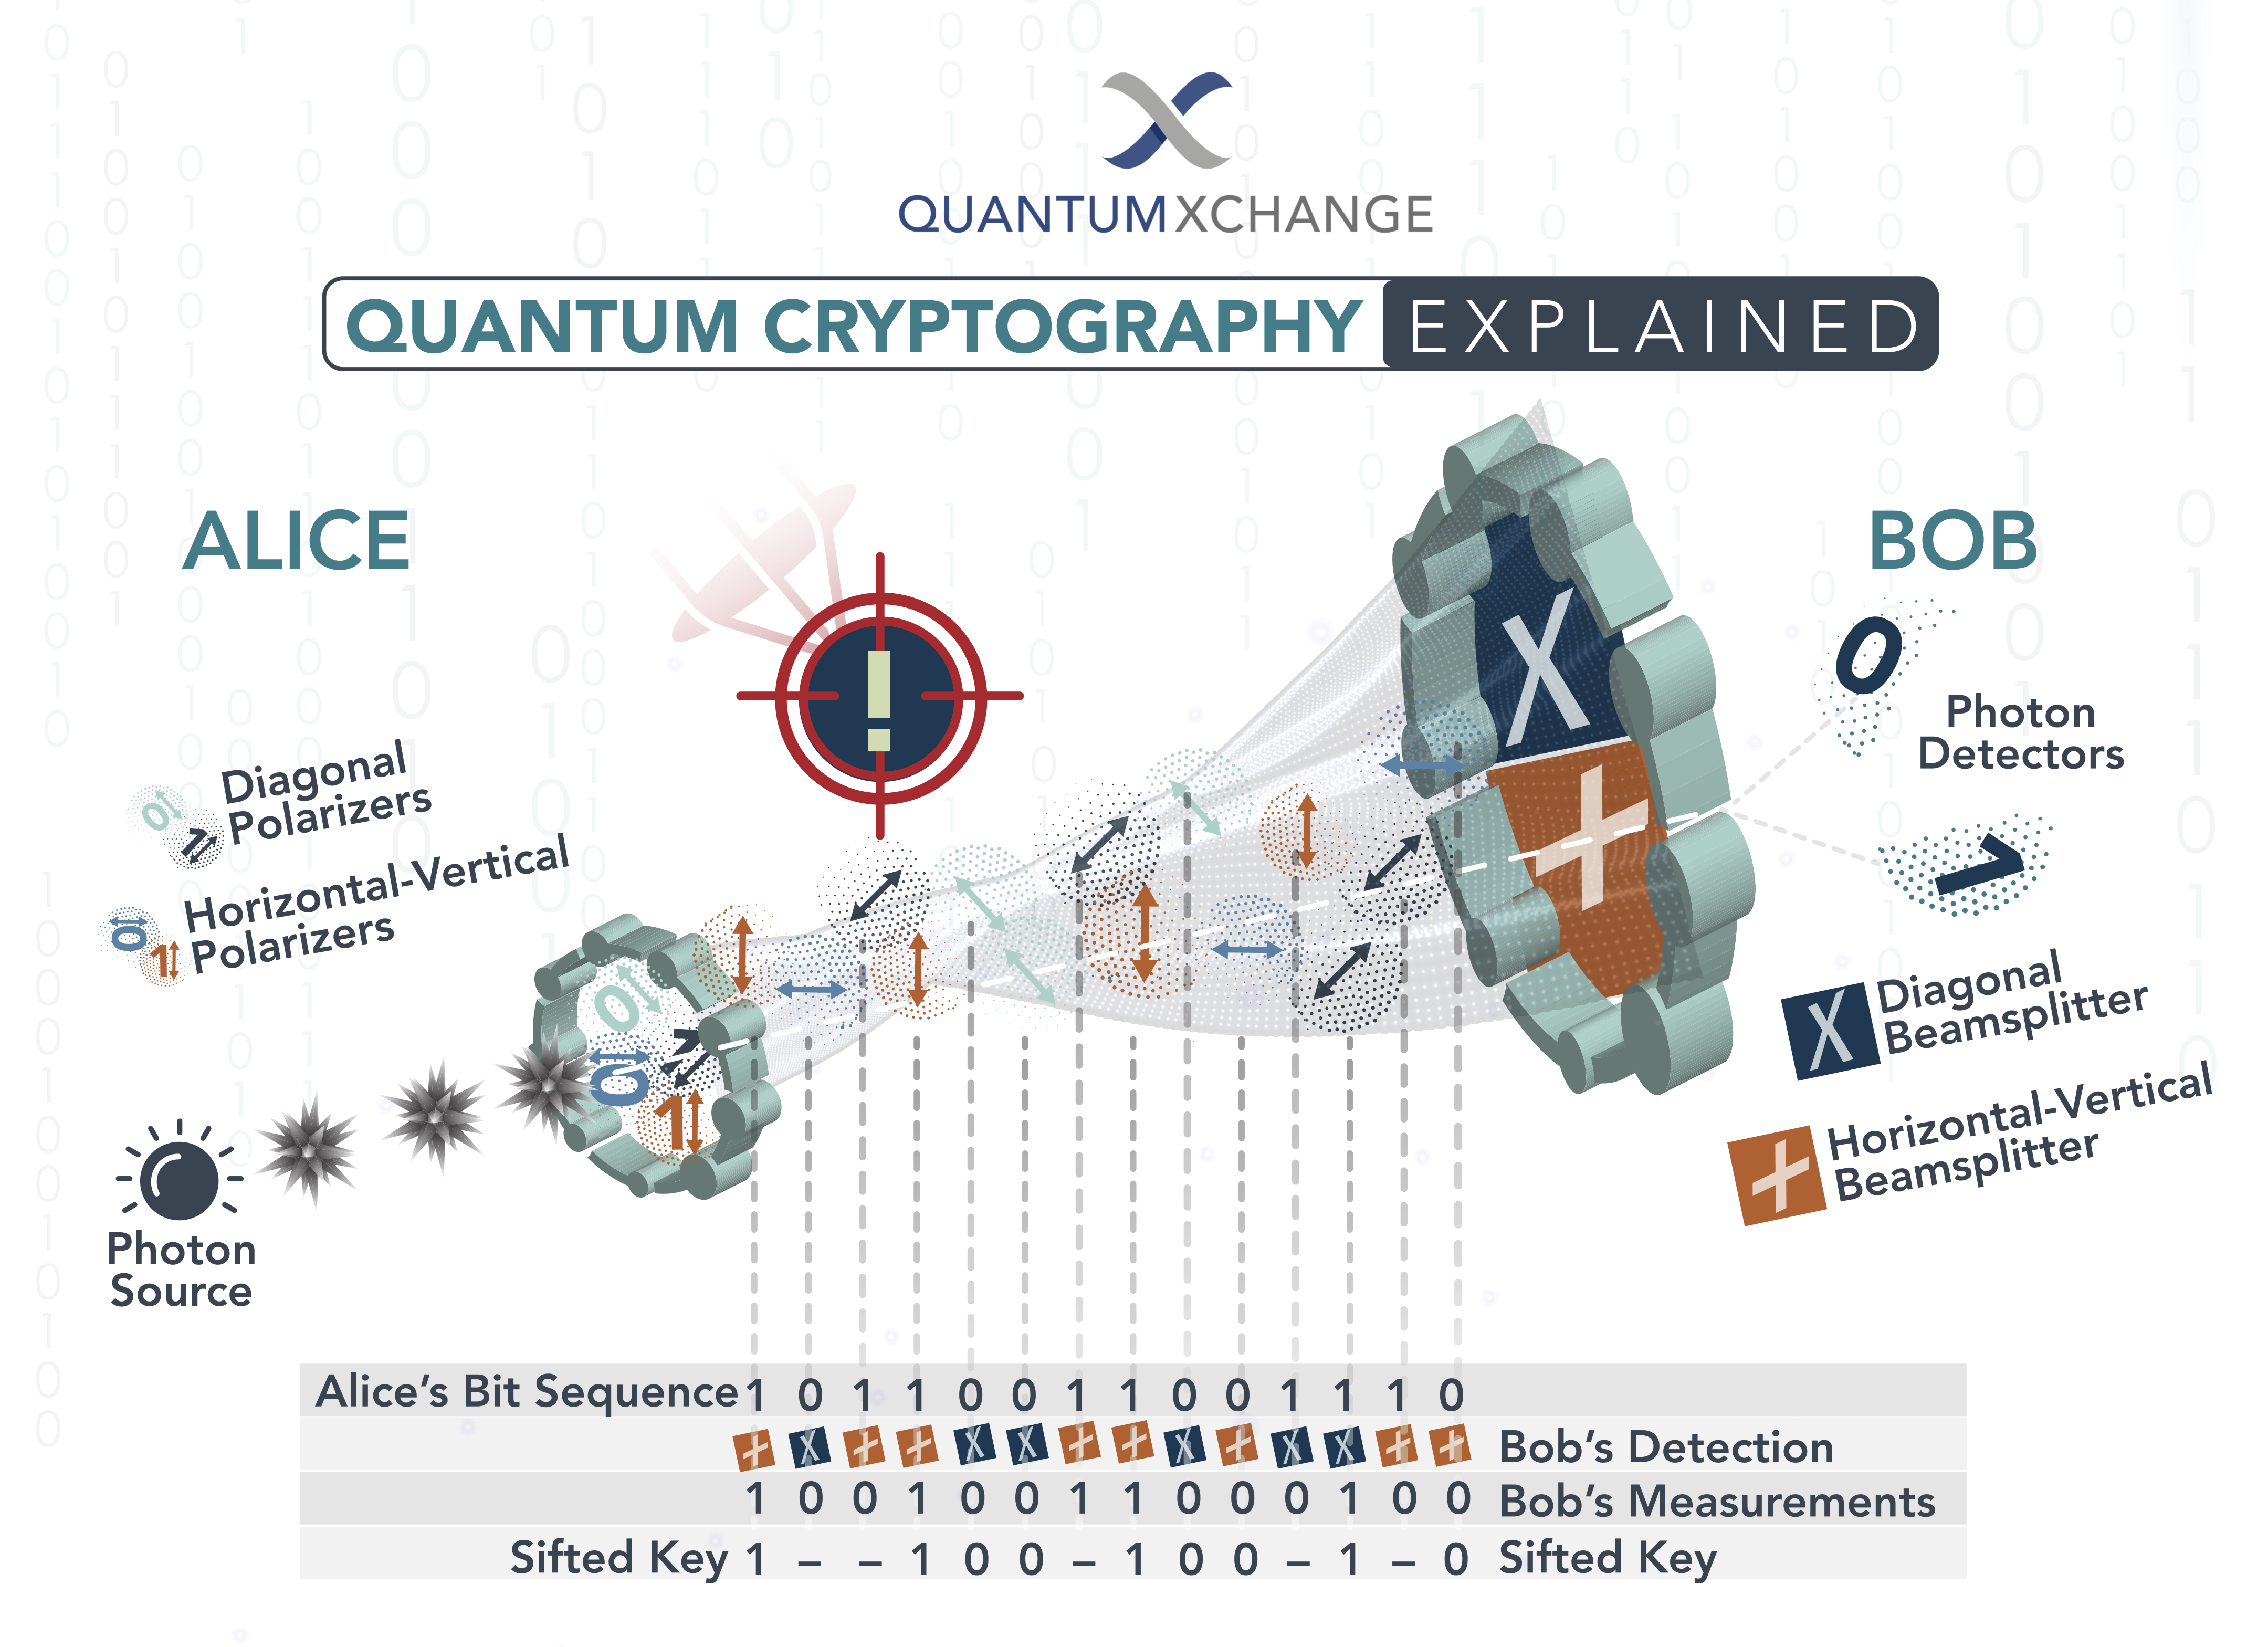 how quantum cryptography works explained